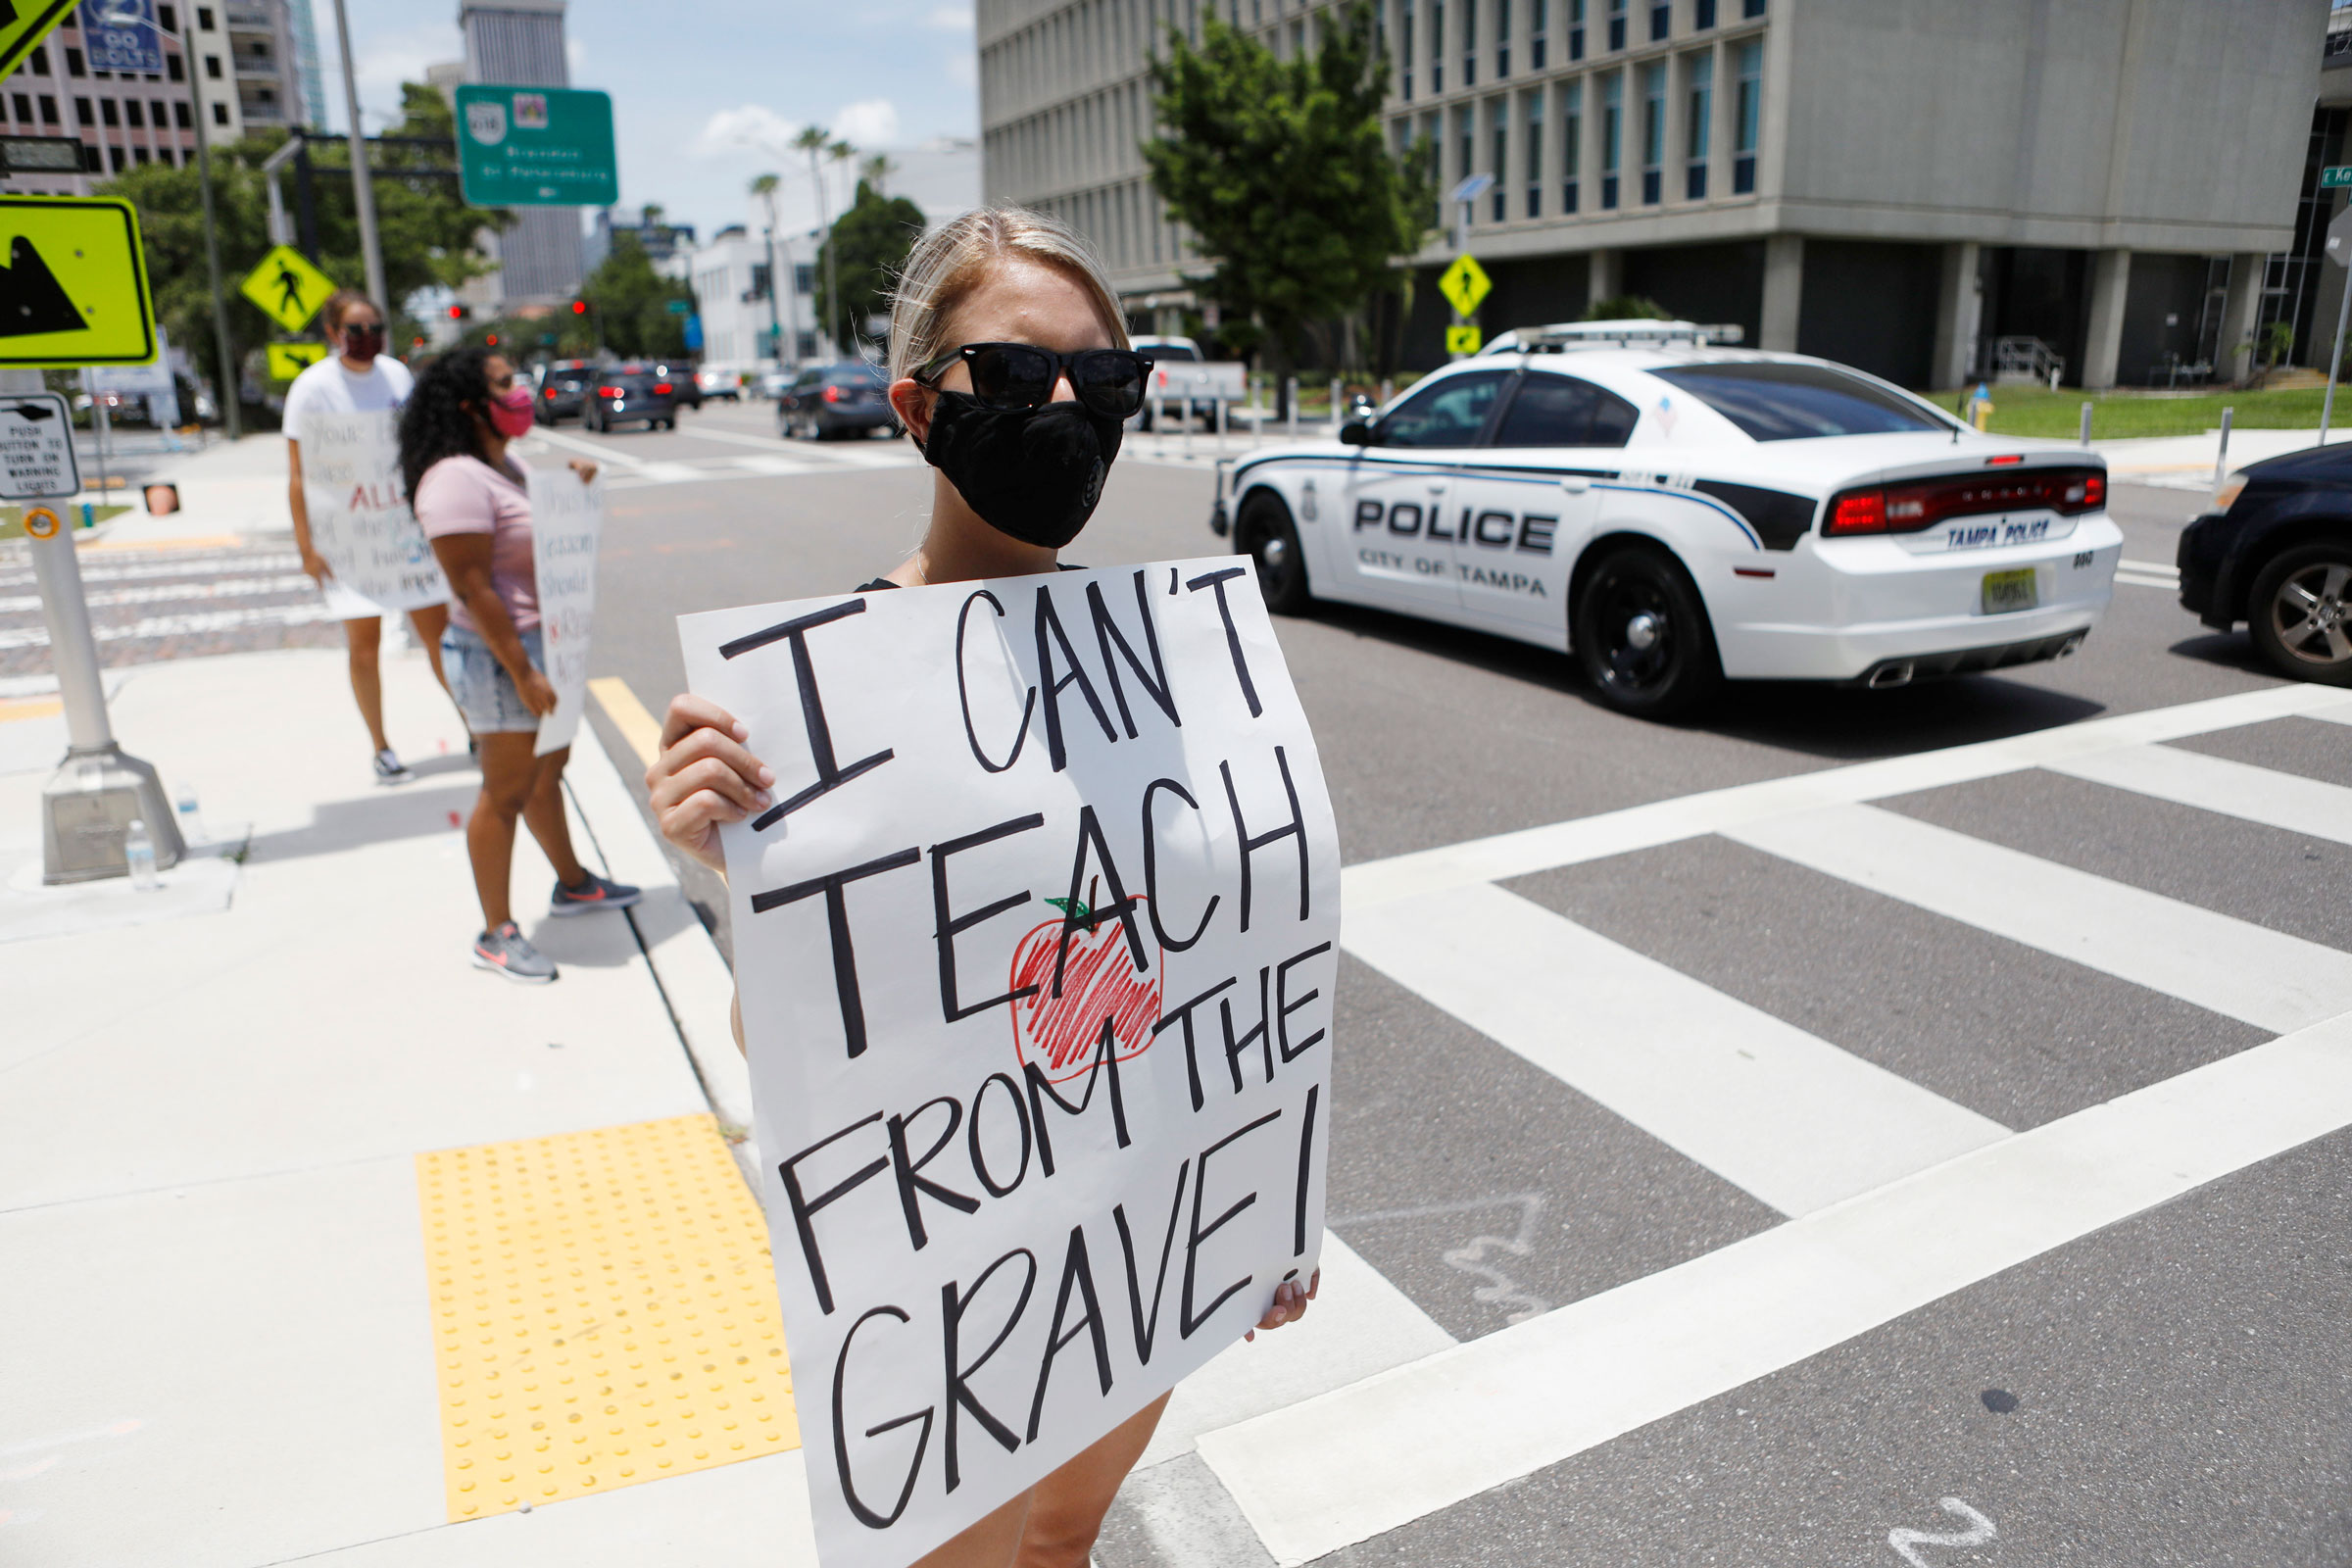 Middle-school teacher Brittany Myers takes part in a protest Thursday in front of the Hillsborough County Schools District Office in Tampa, Florida.